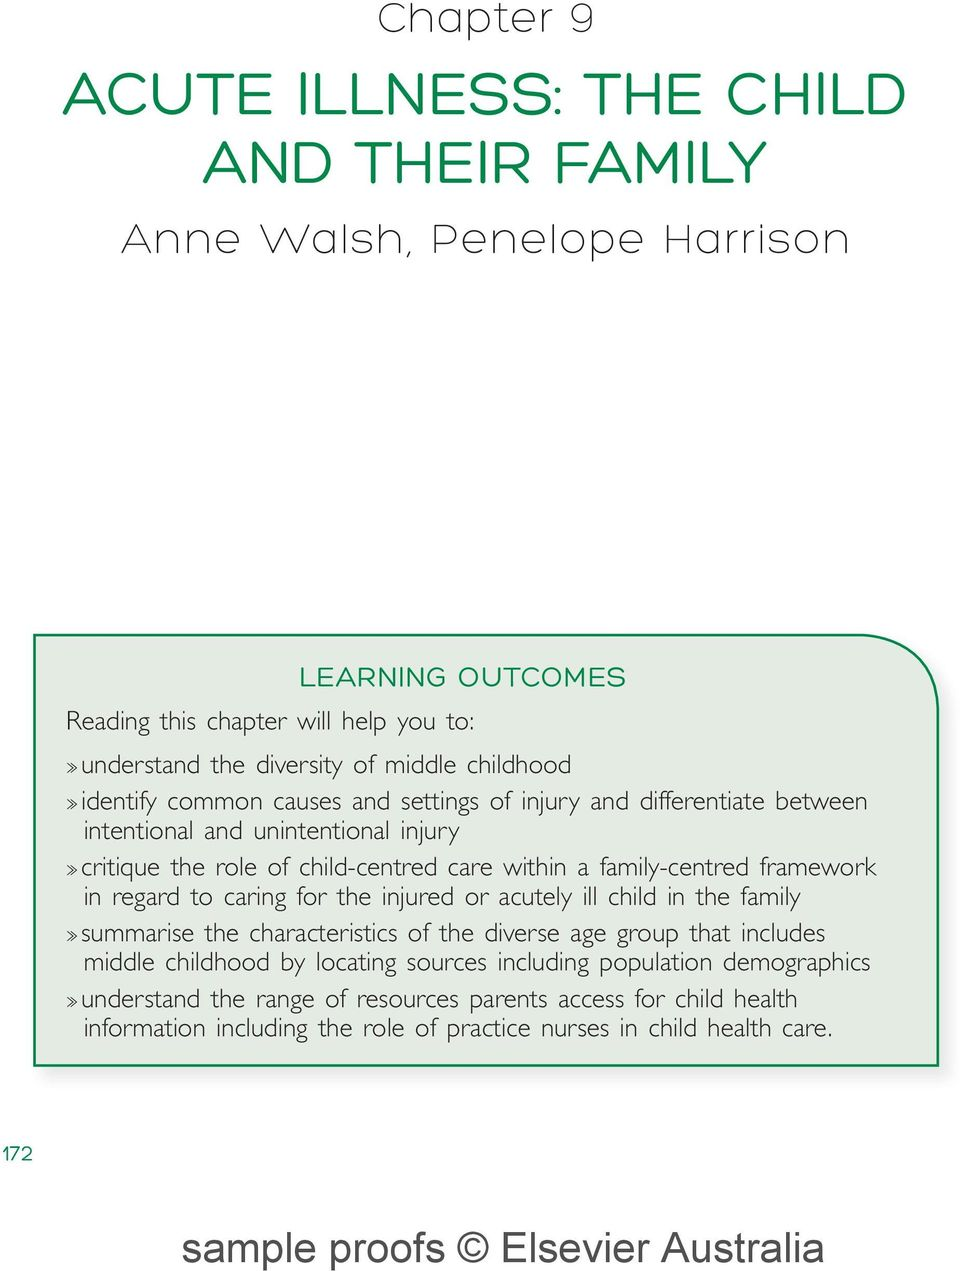 family-centred framework in regard to caring for the injured or acutely ill child in the family summarise the characteristics of the diverse age group that includes middle